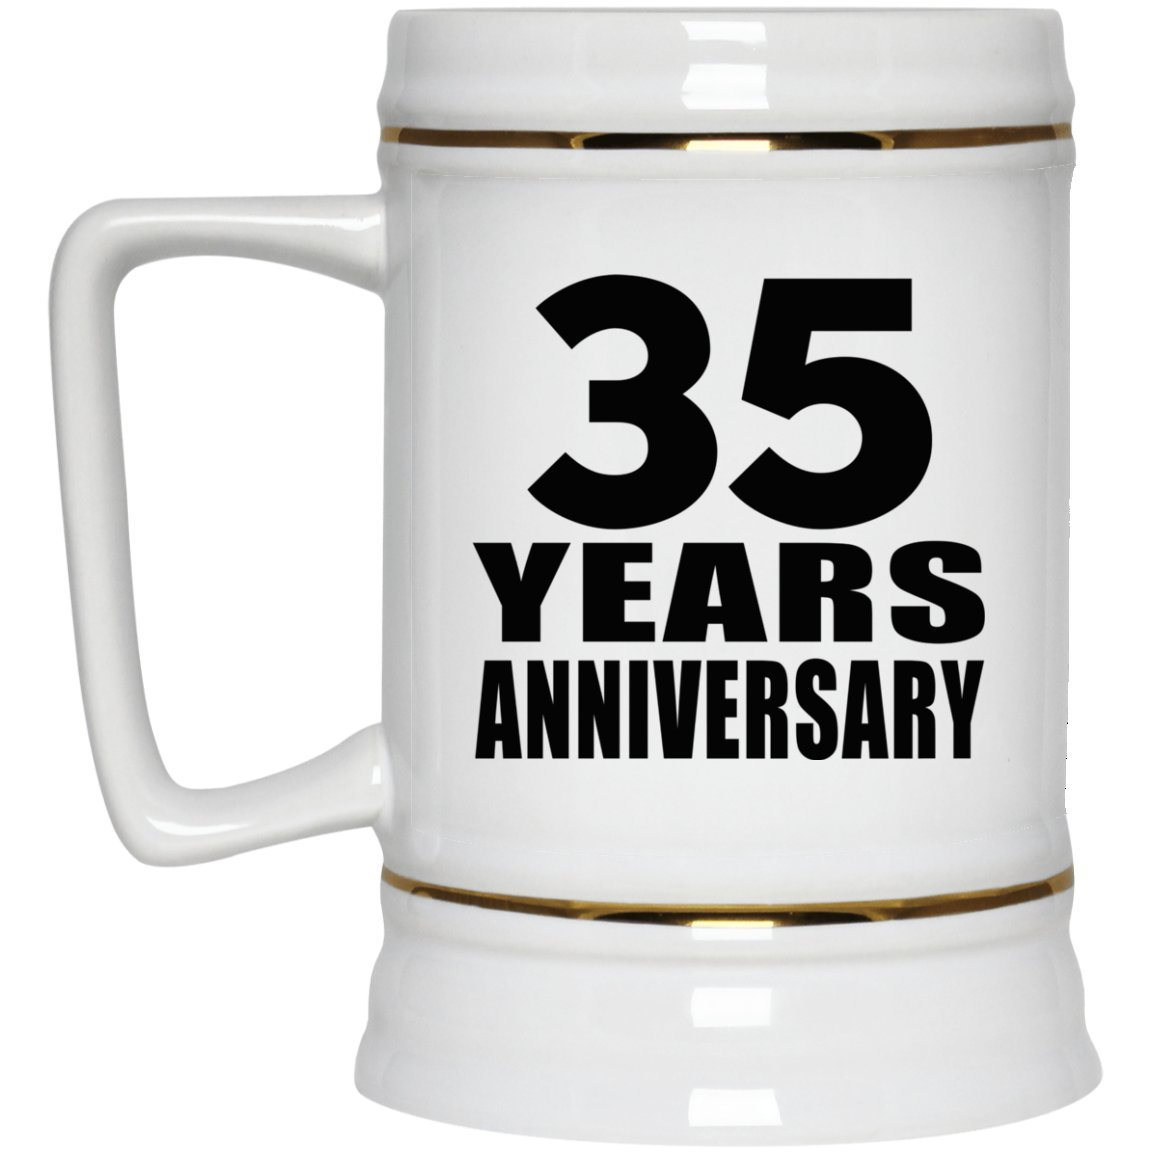 22oz Beer Stein Ceramic Bar Mug Tankard High Quality 35th Anniversary 35 Years Gift for Wife Husband Wo-Men Her Him Wedding Mother/'s Father/'s Day Birthday Anniversary